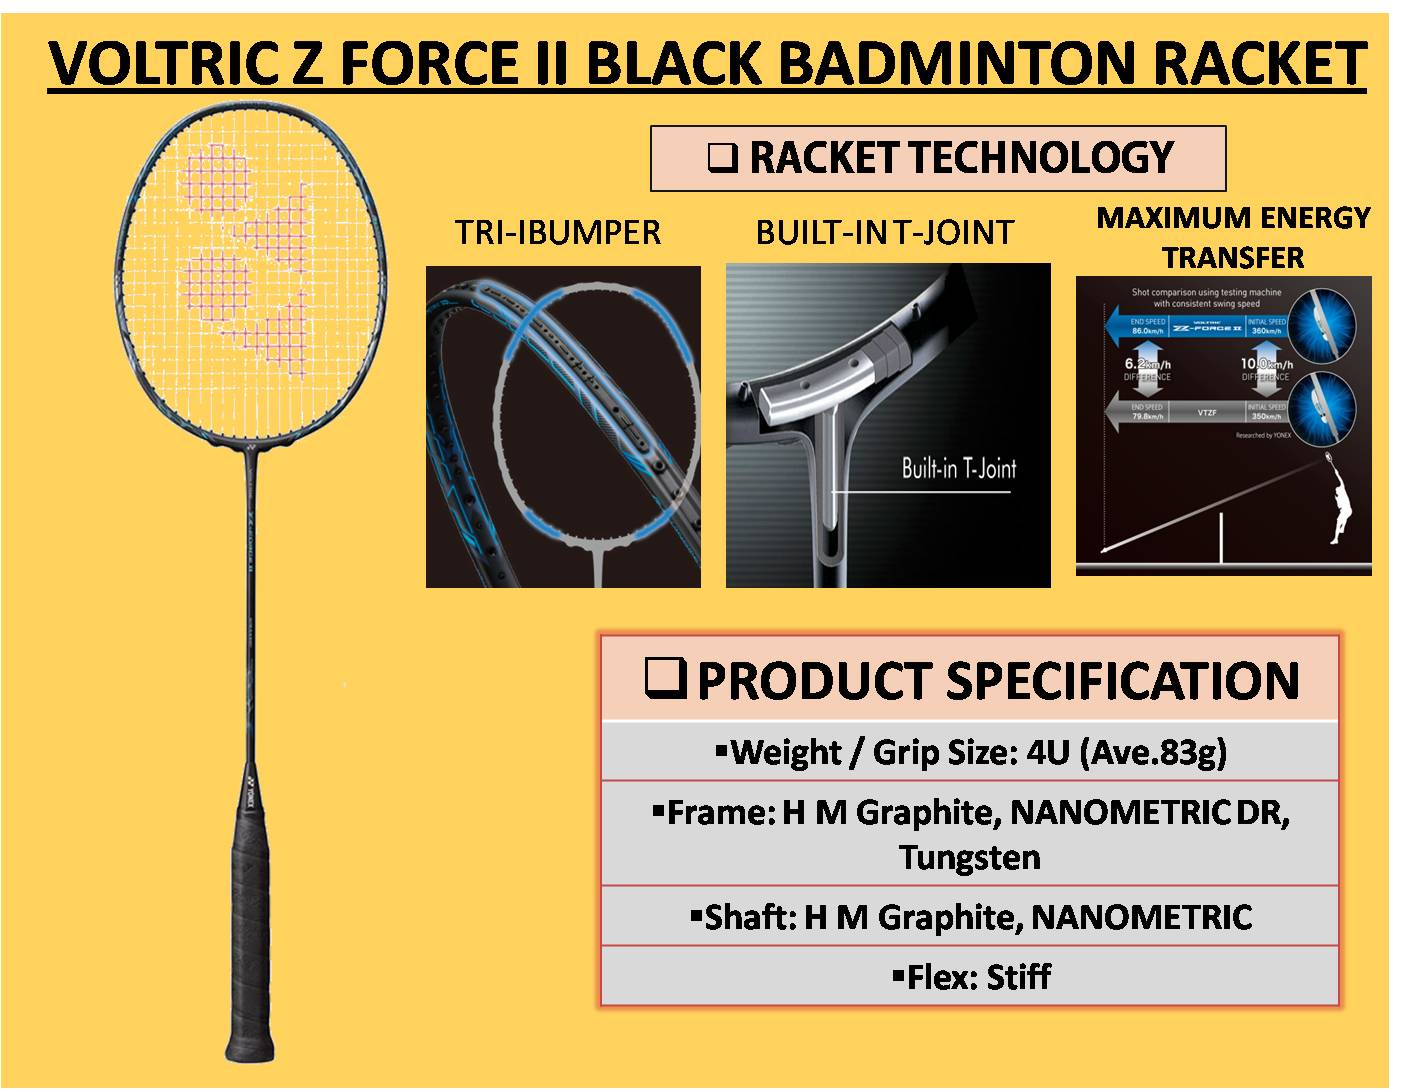 VOLTRIC Z FORCE II BLACK BADMINTON RACKET